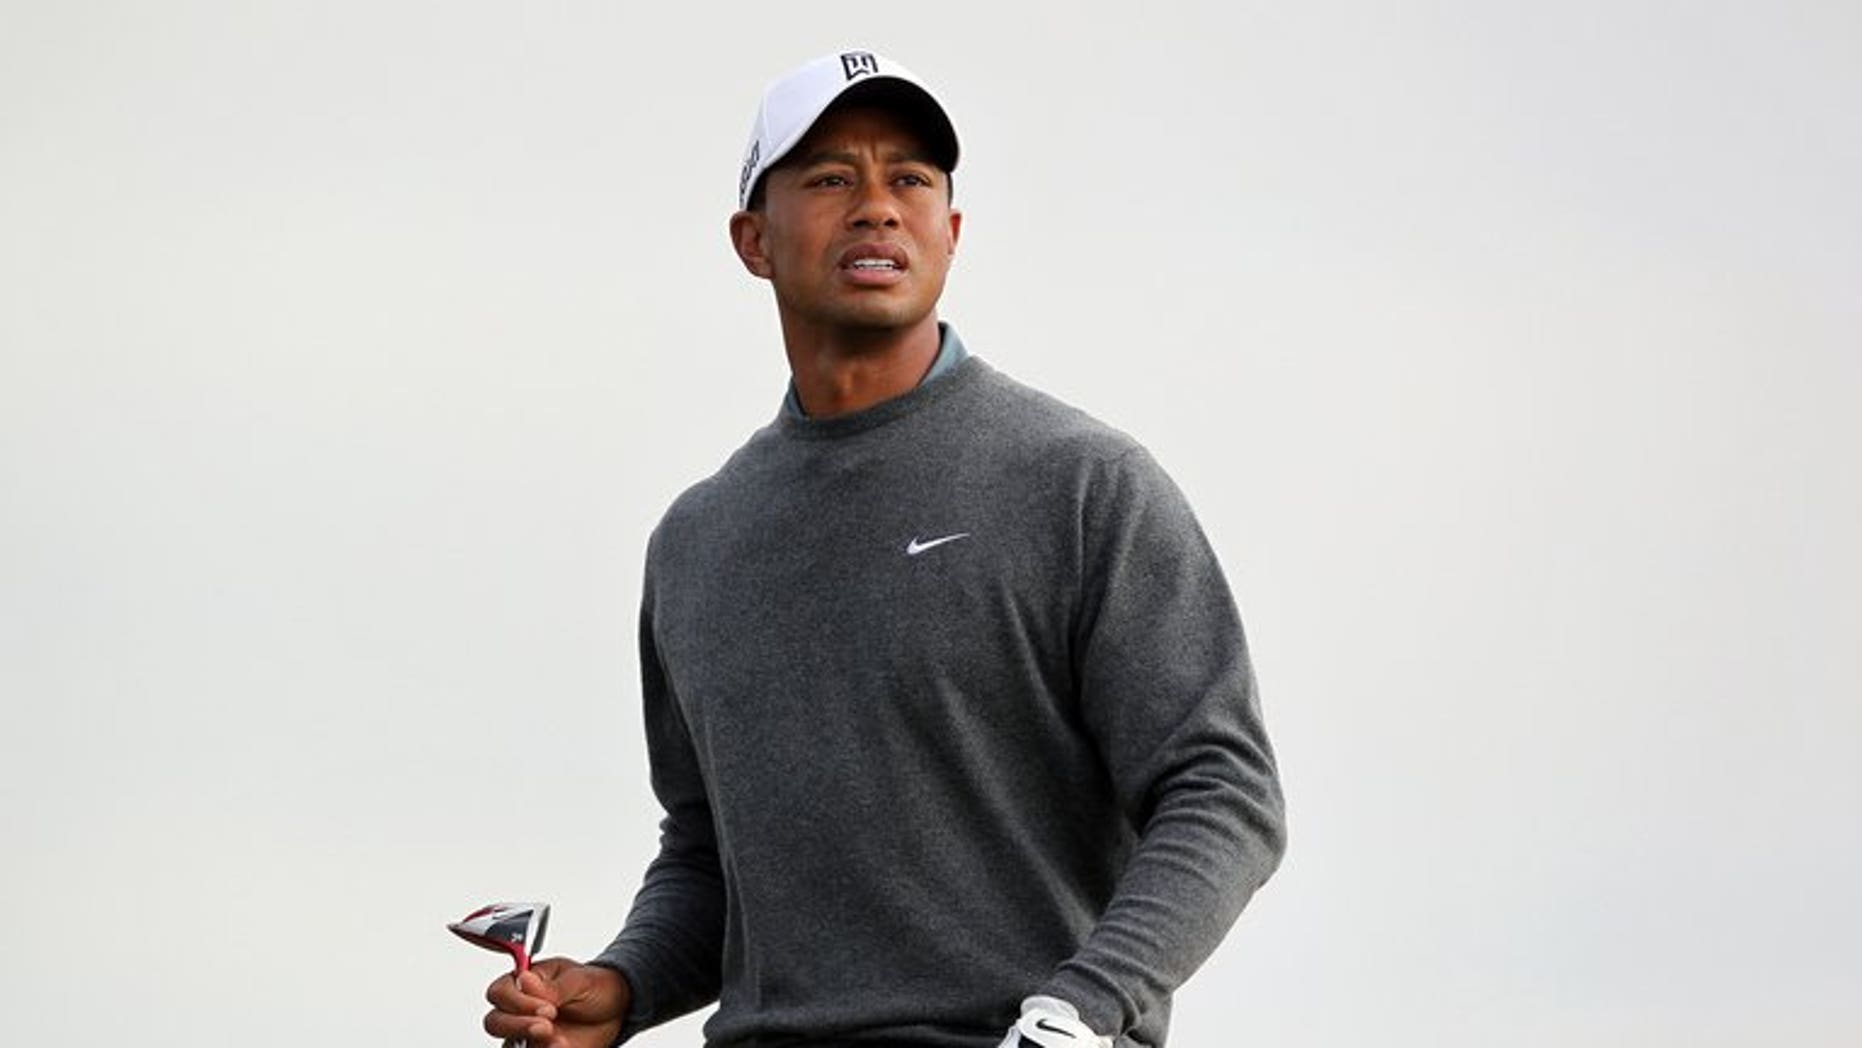 US golfer Tiger Woods watches his shot from the 17th tee during a practice round for the 2013 British Open Golf Championship at Muirfield Golf Course in Gullane, eastern Scotland on July 15, 2013. Woods will join Ulsterman Graeme McDowell and South African Louis Oosthuizen for Thursday's first round of the British Open.